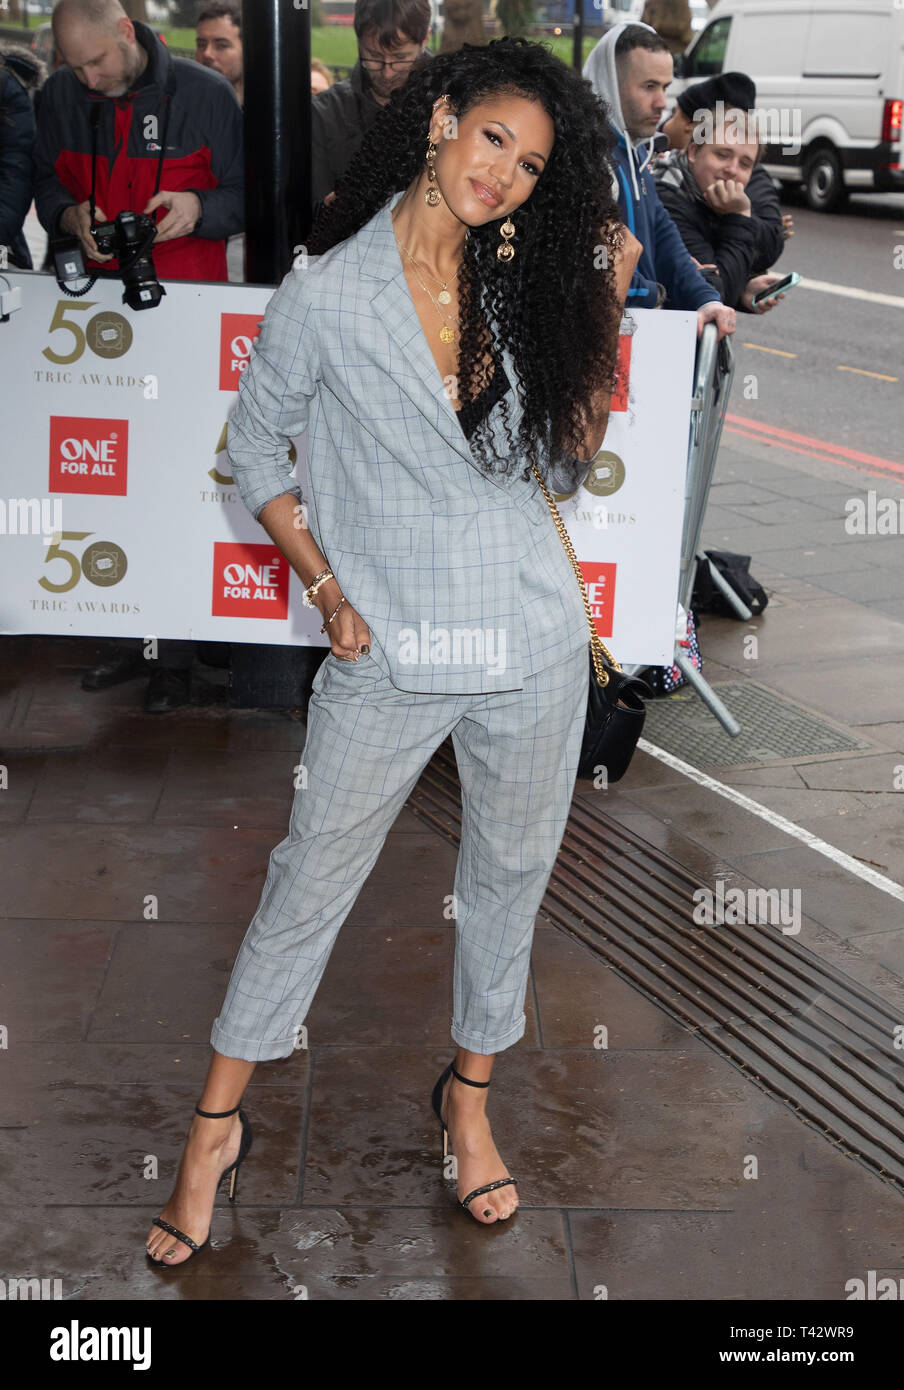 TRIC Awards 2019 held at the Grosvenor House Hotel  Featuring: Vick Hope Where: London, United Kingdom When: 12 Mar 2019 Credit: WENN.com - Stock Image